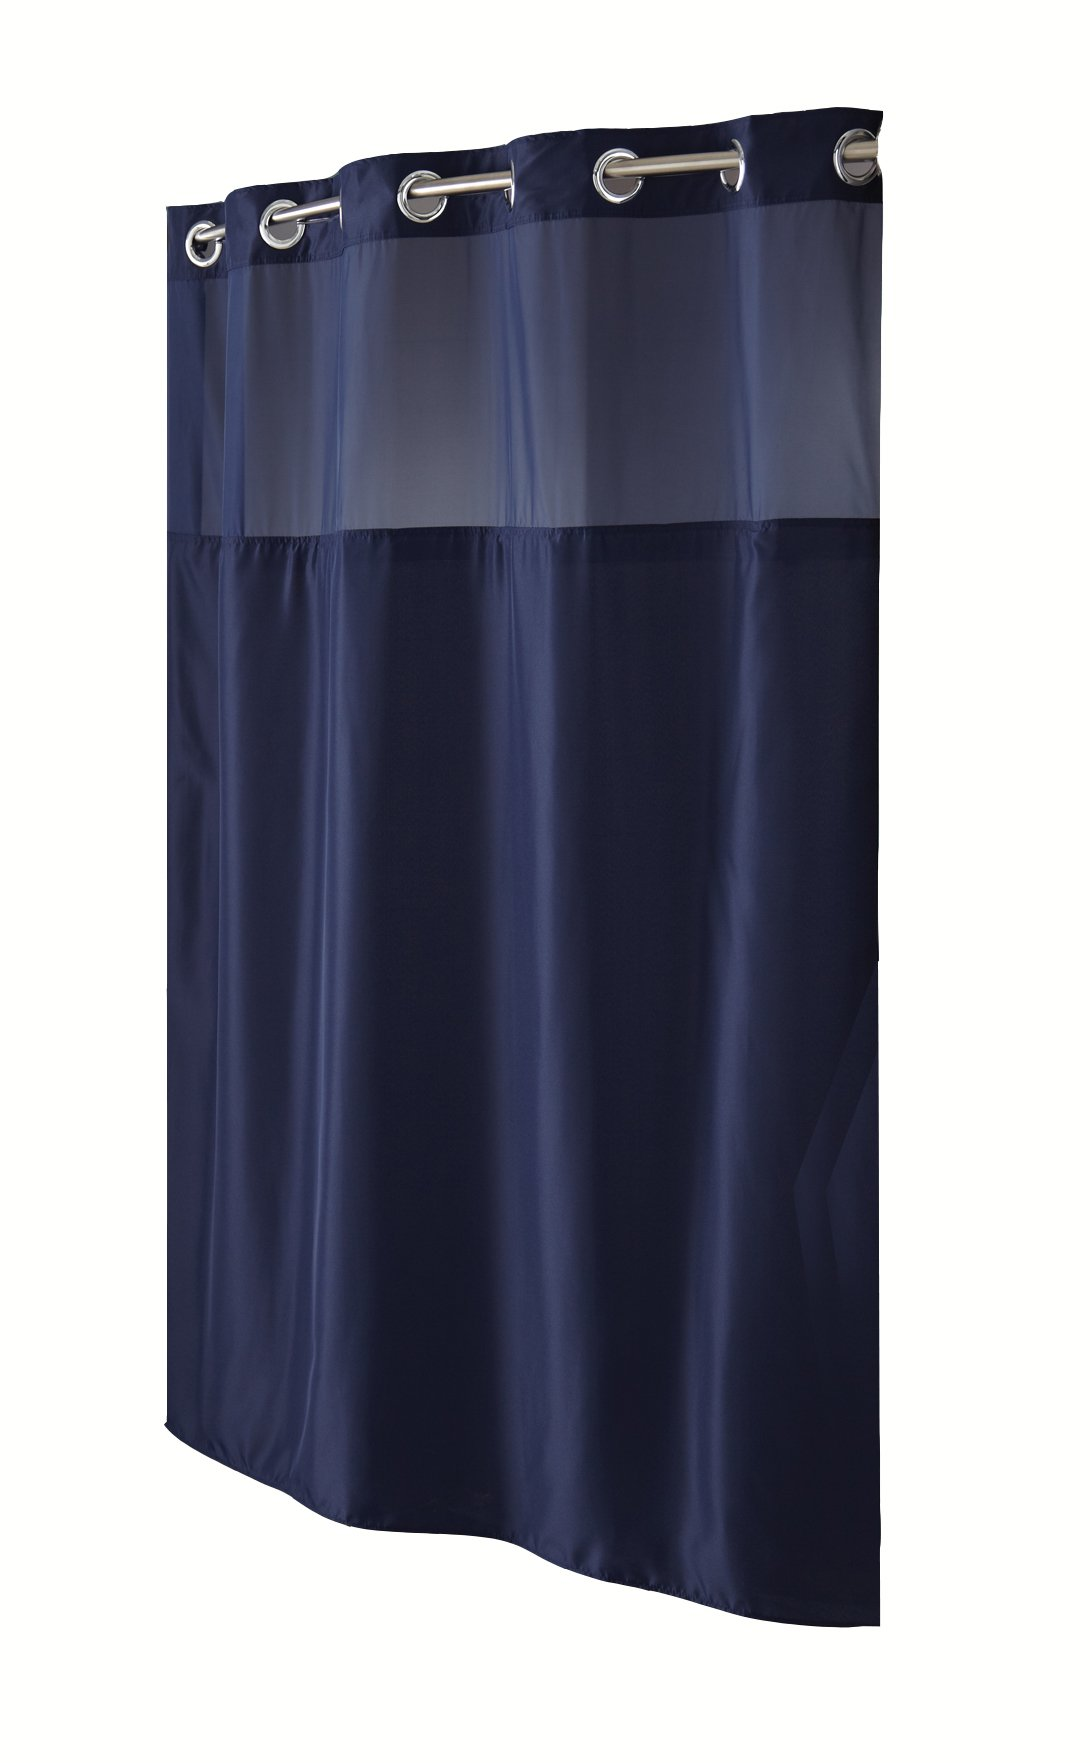 Hookless Fabric Shower Curtain With Built In Liner Navy Blue EBay